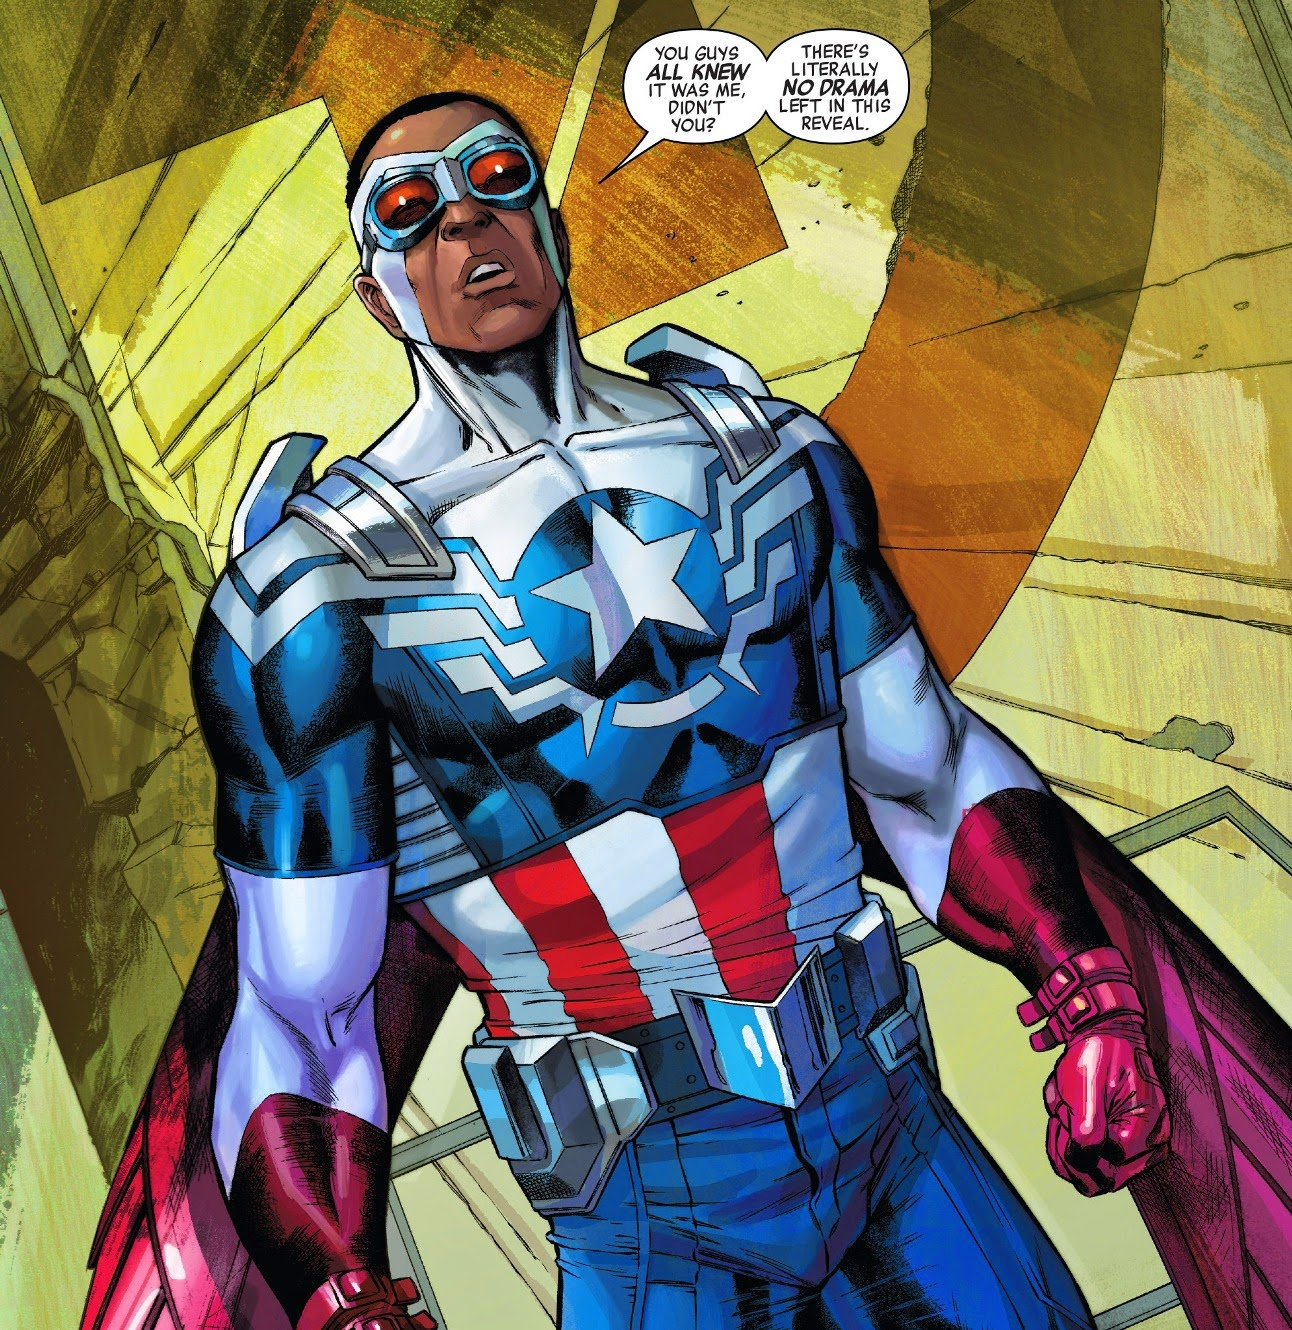 [Comic] All New Captain America.